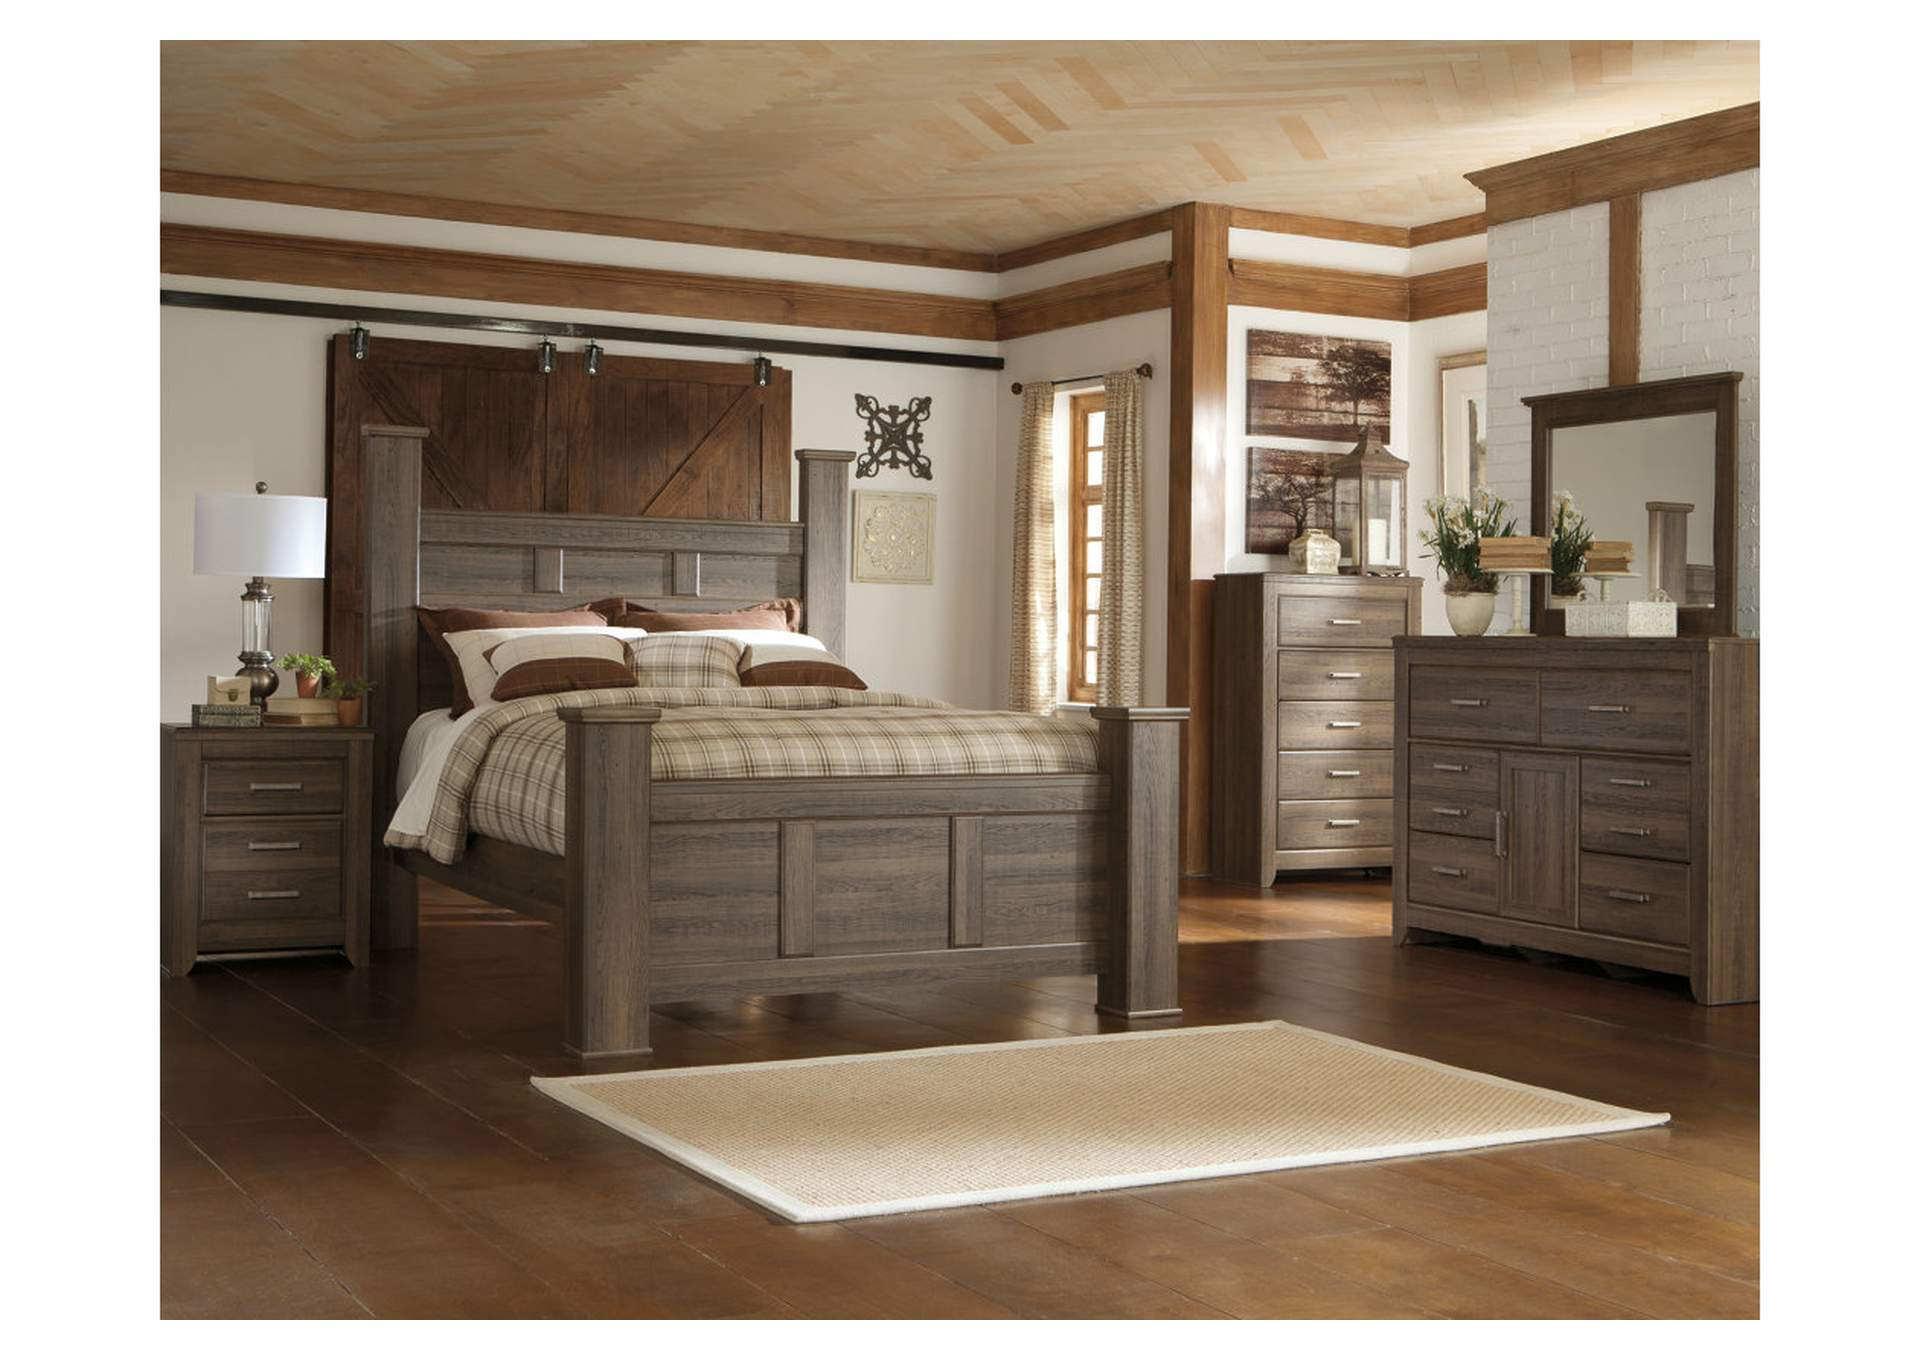 Juararo Queen Poster Bed, Dresser & Mirror,Signature Design by Ashley